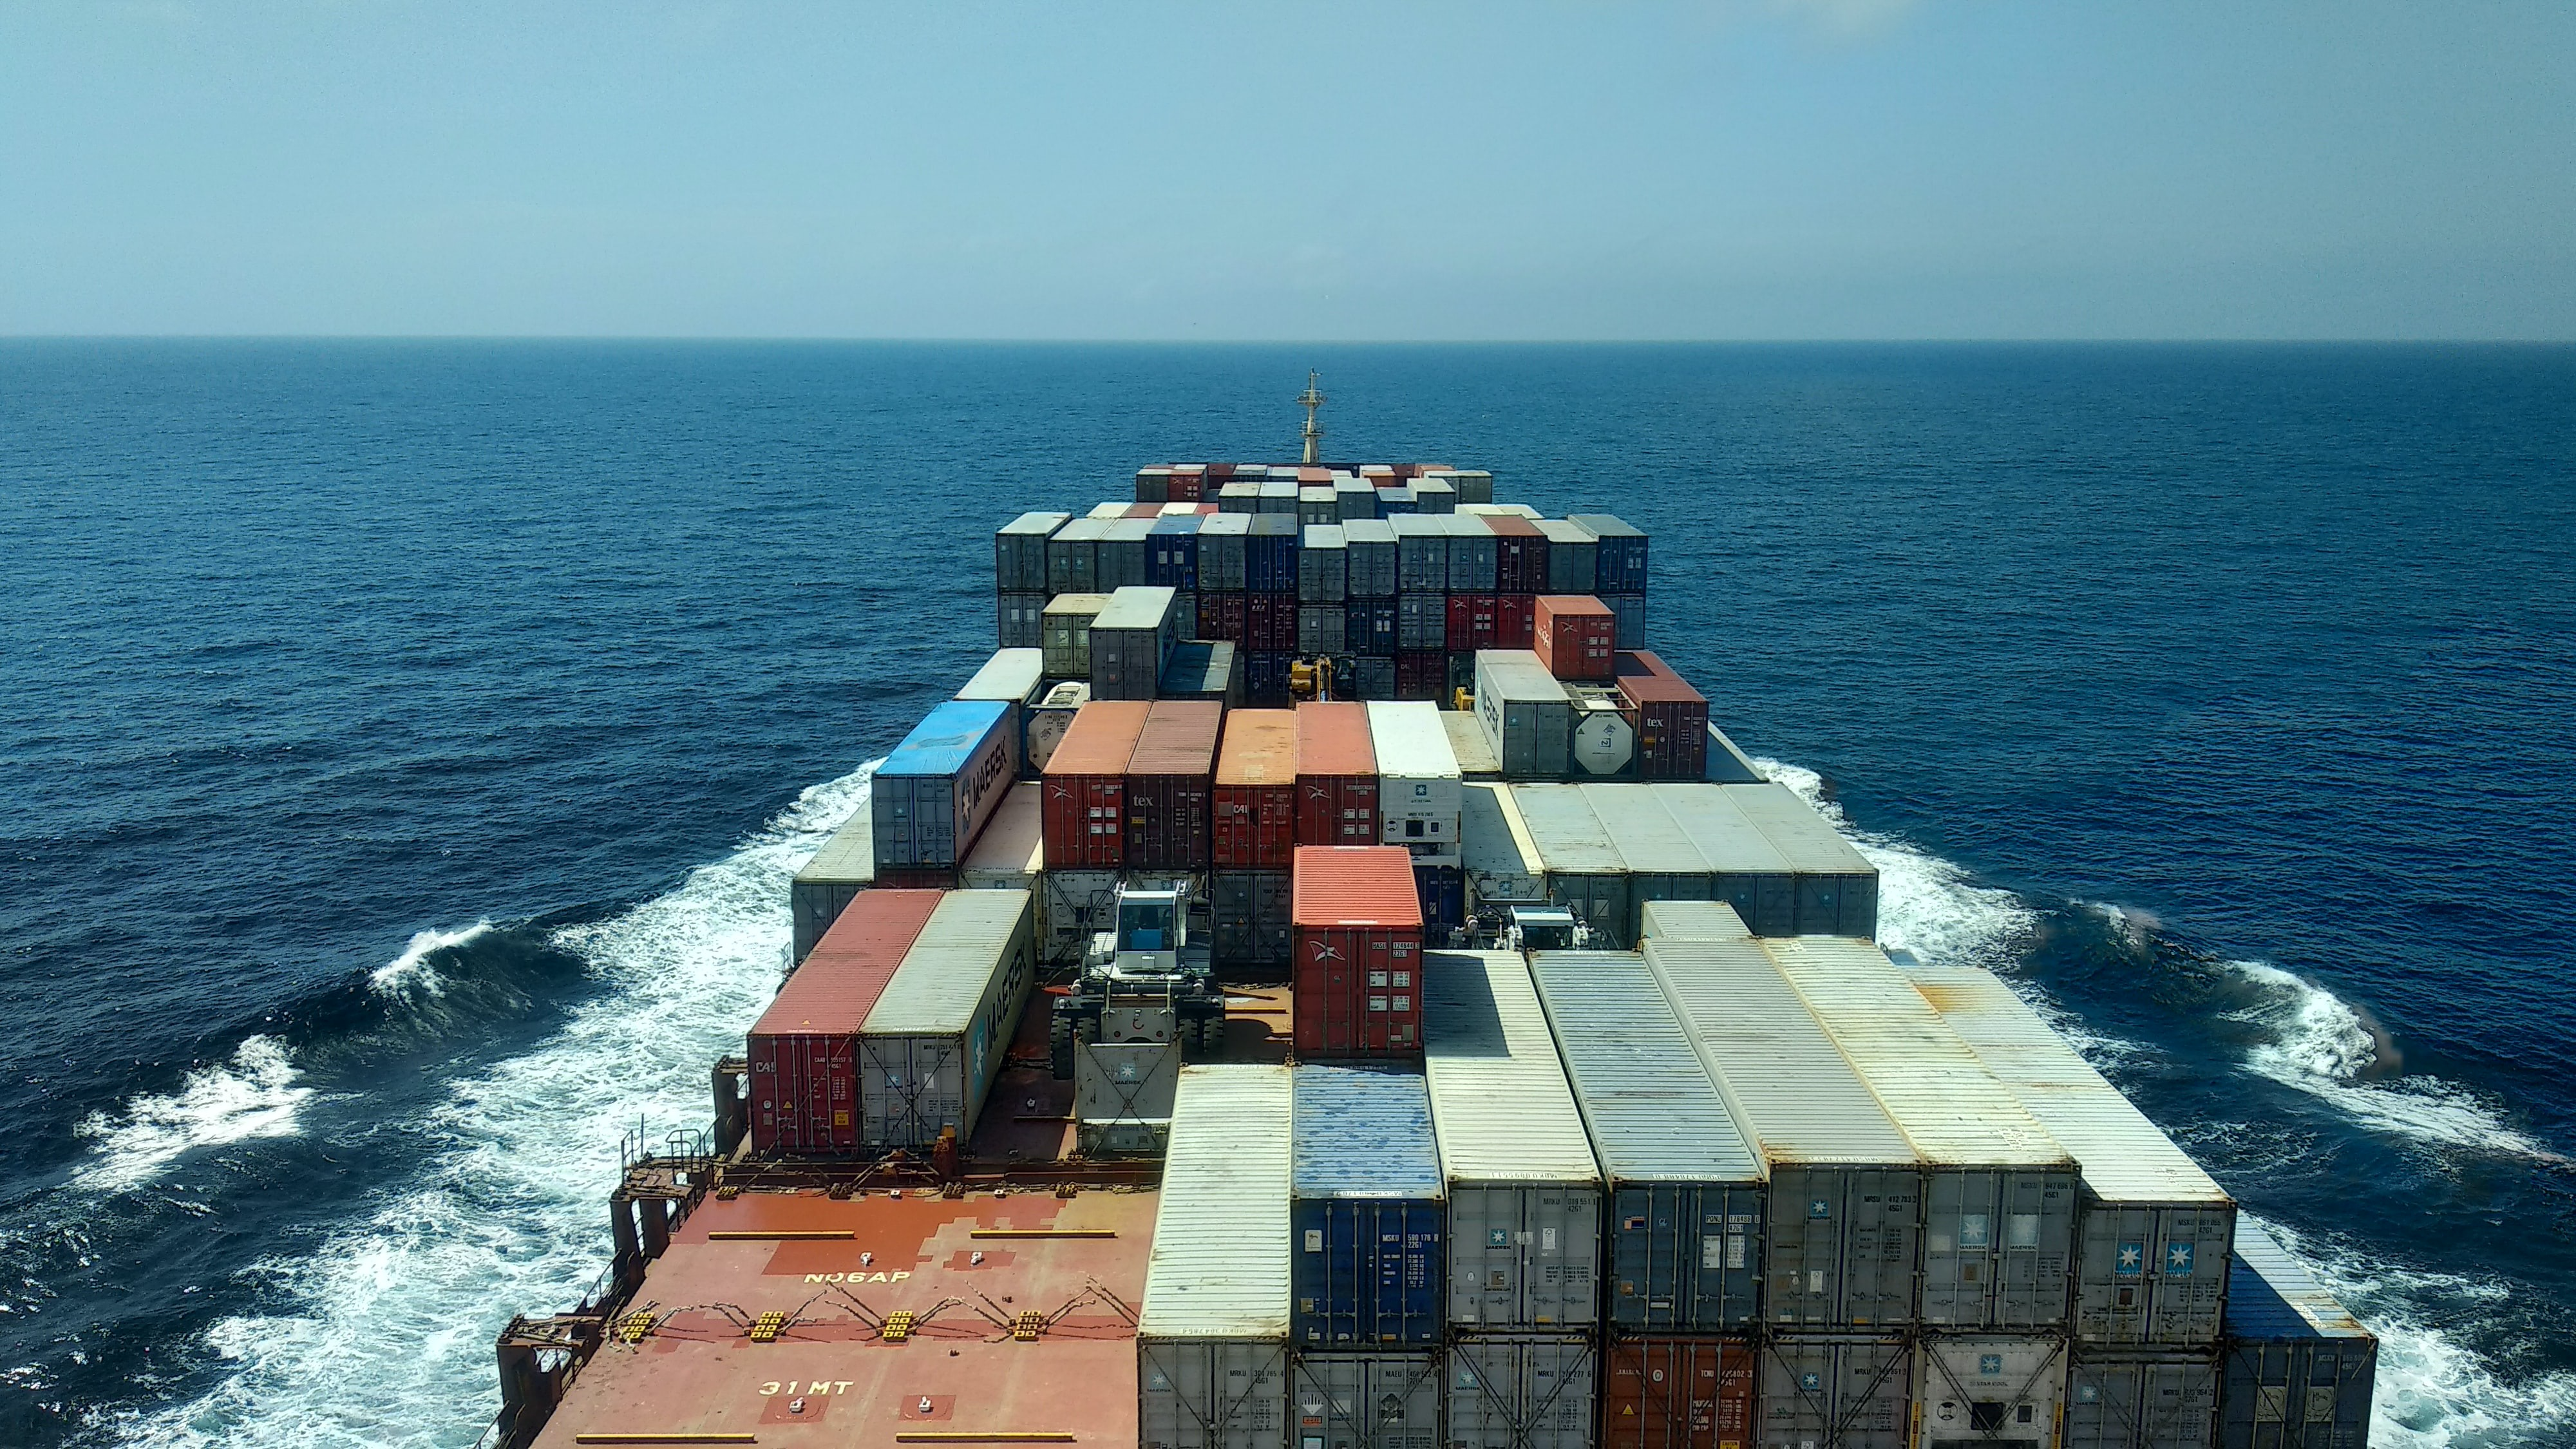 Picture of a container ship sailing on sea